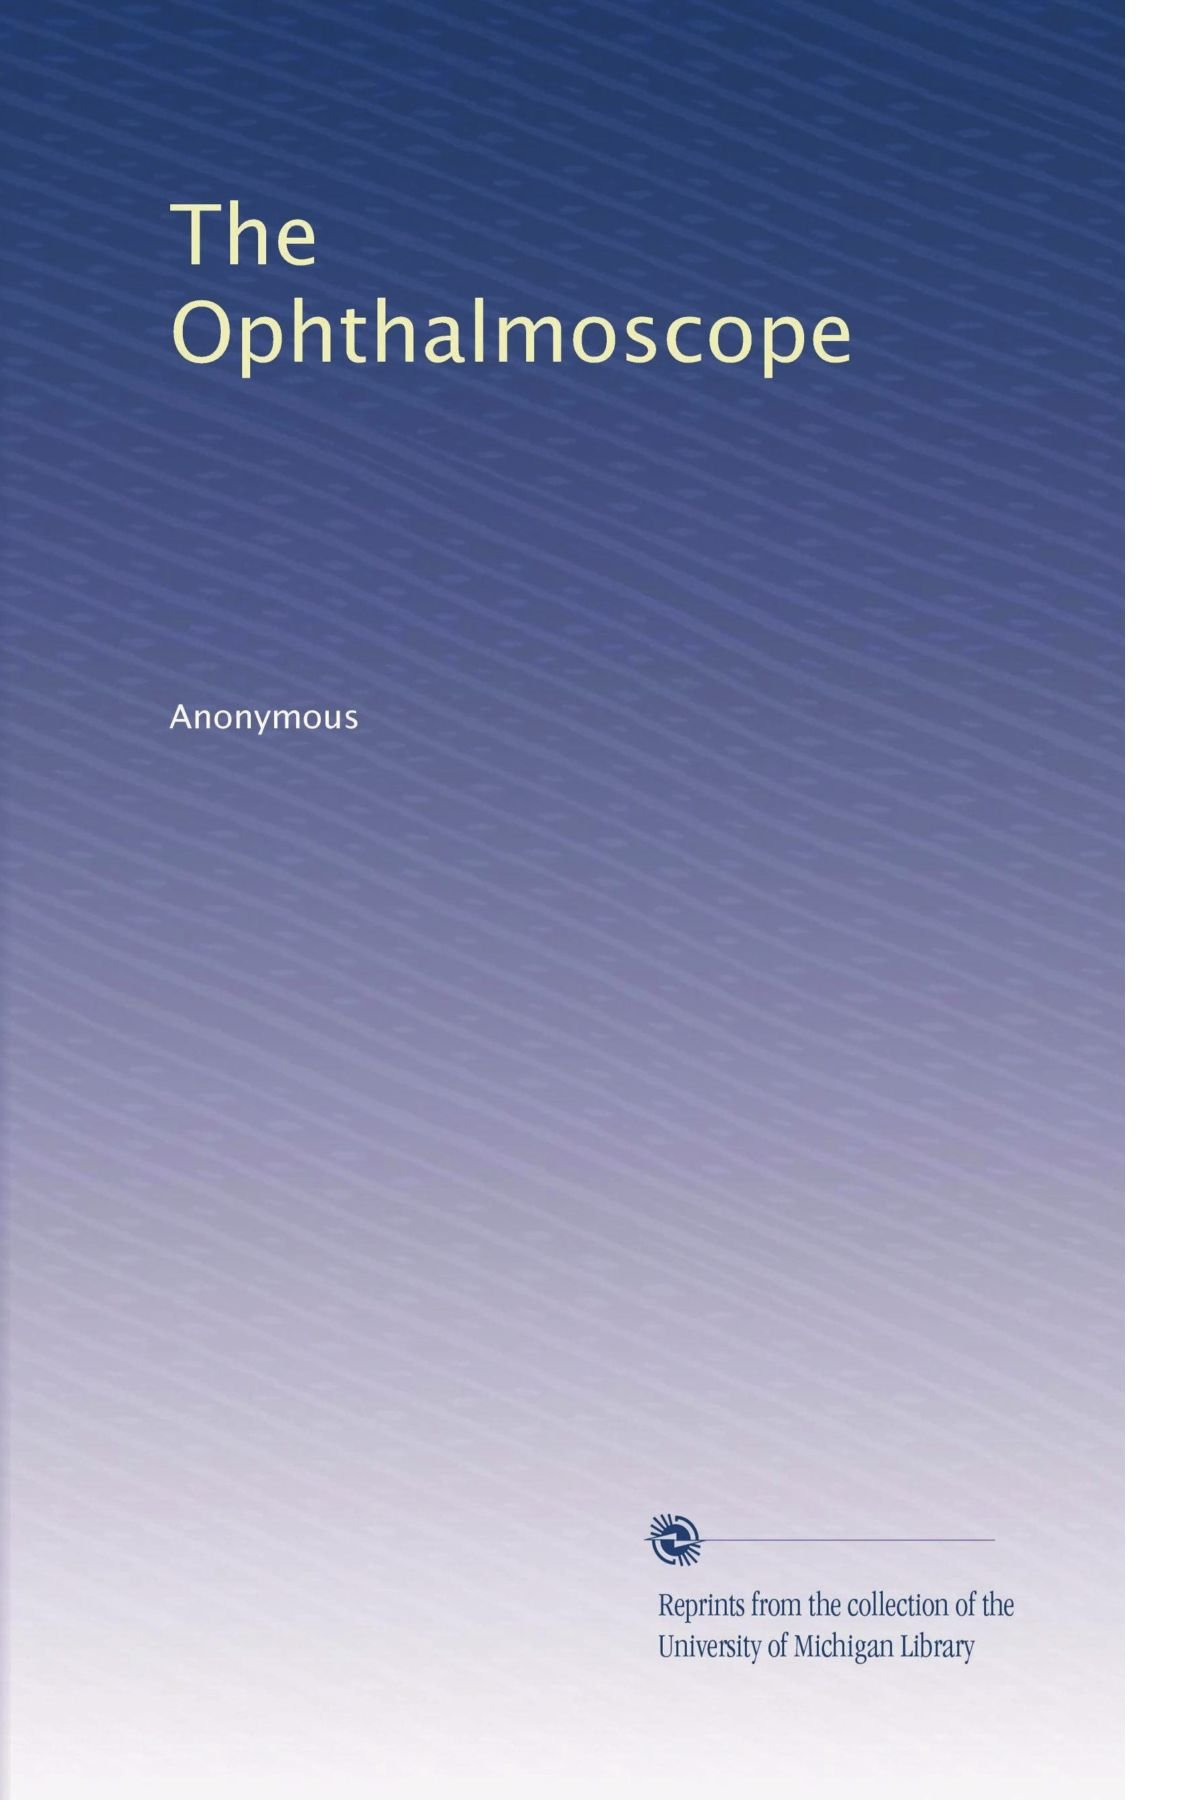 Download The Ophthalmoscope (Volume 9) PDF